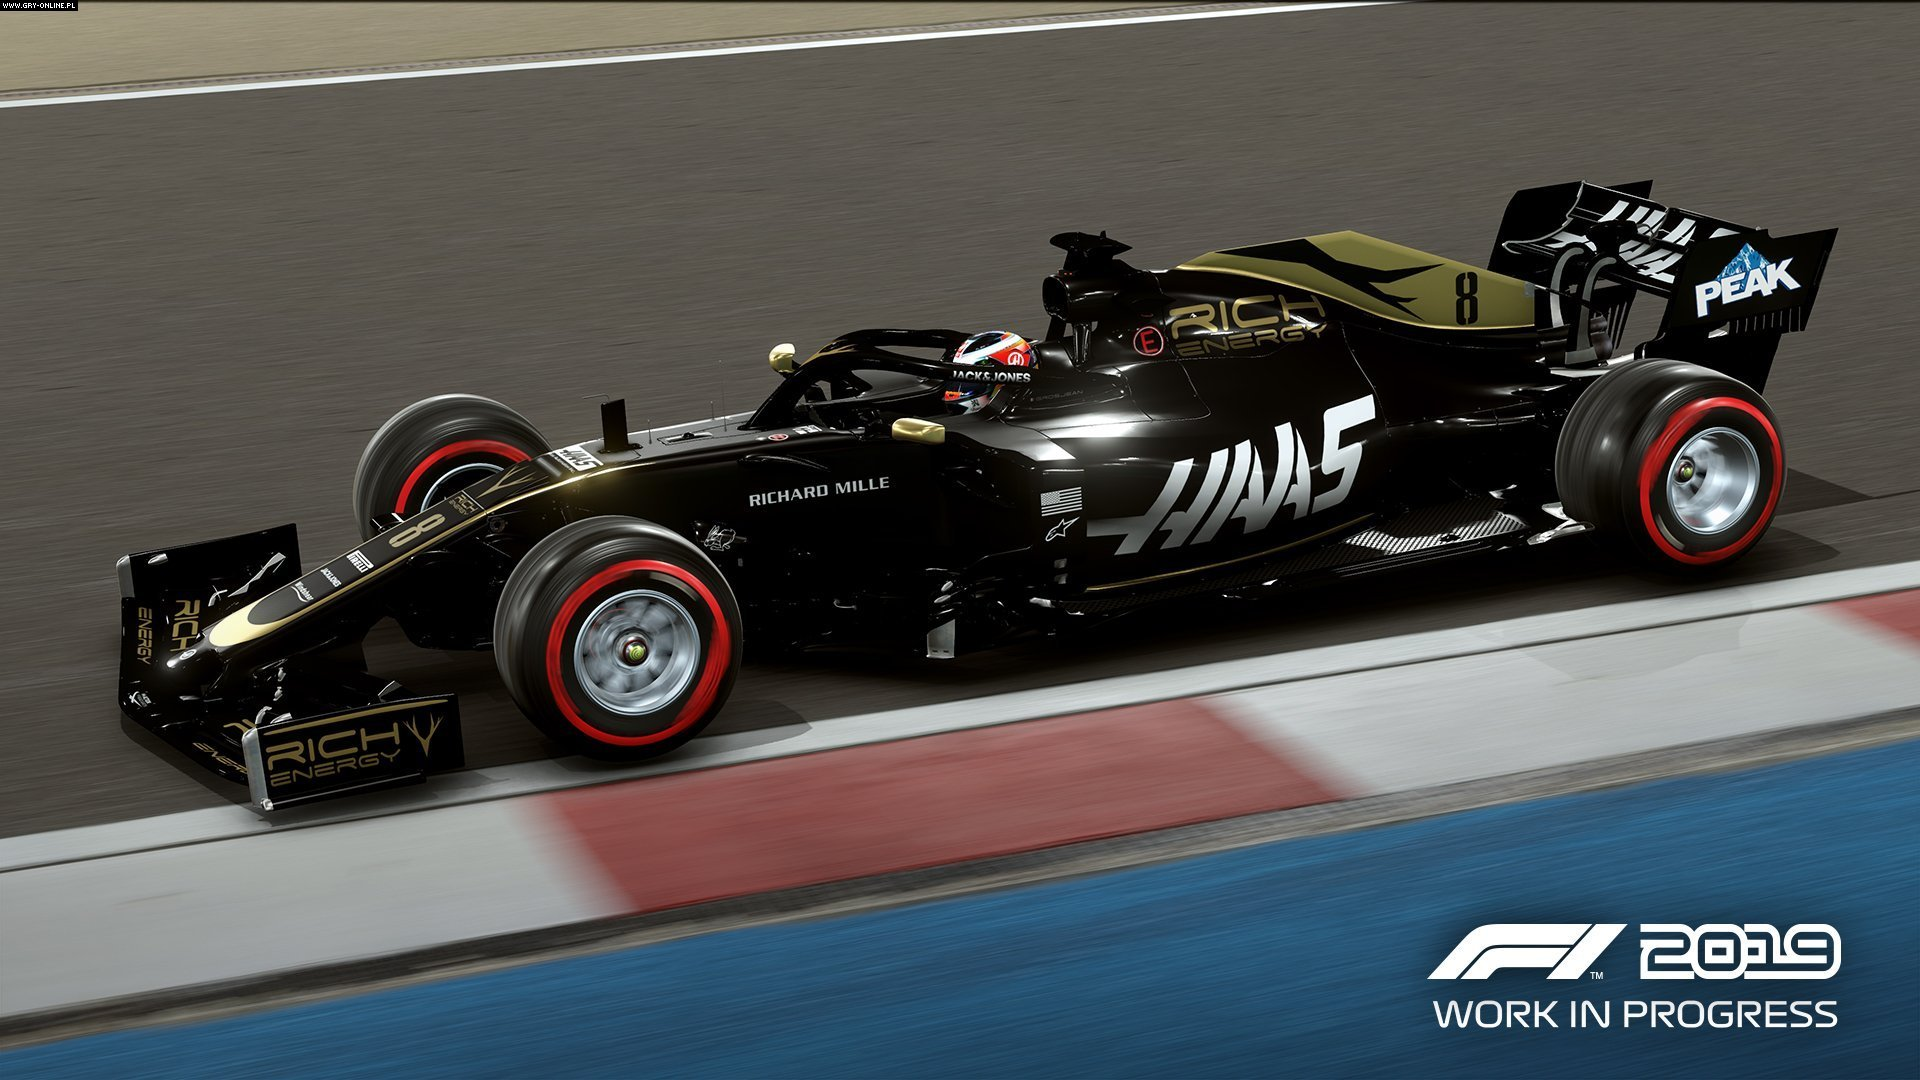 F1 2019 PC, PS4, XONE Games Image 84/104, Codemasters Software